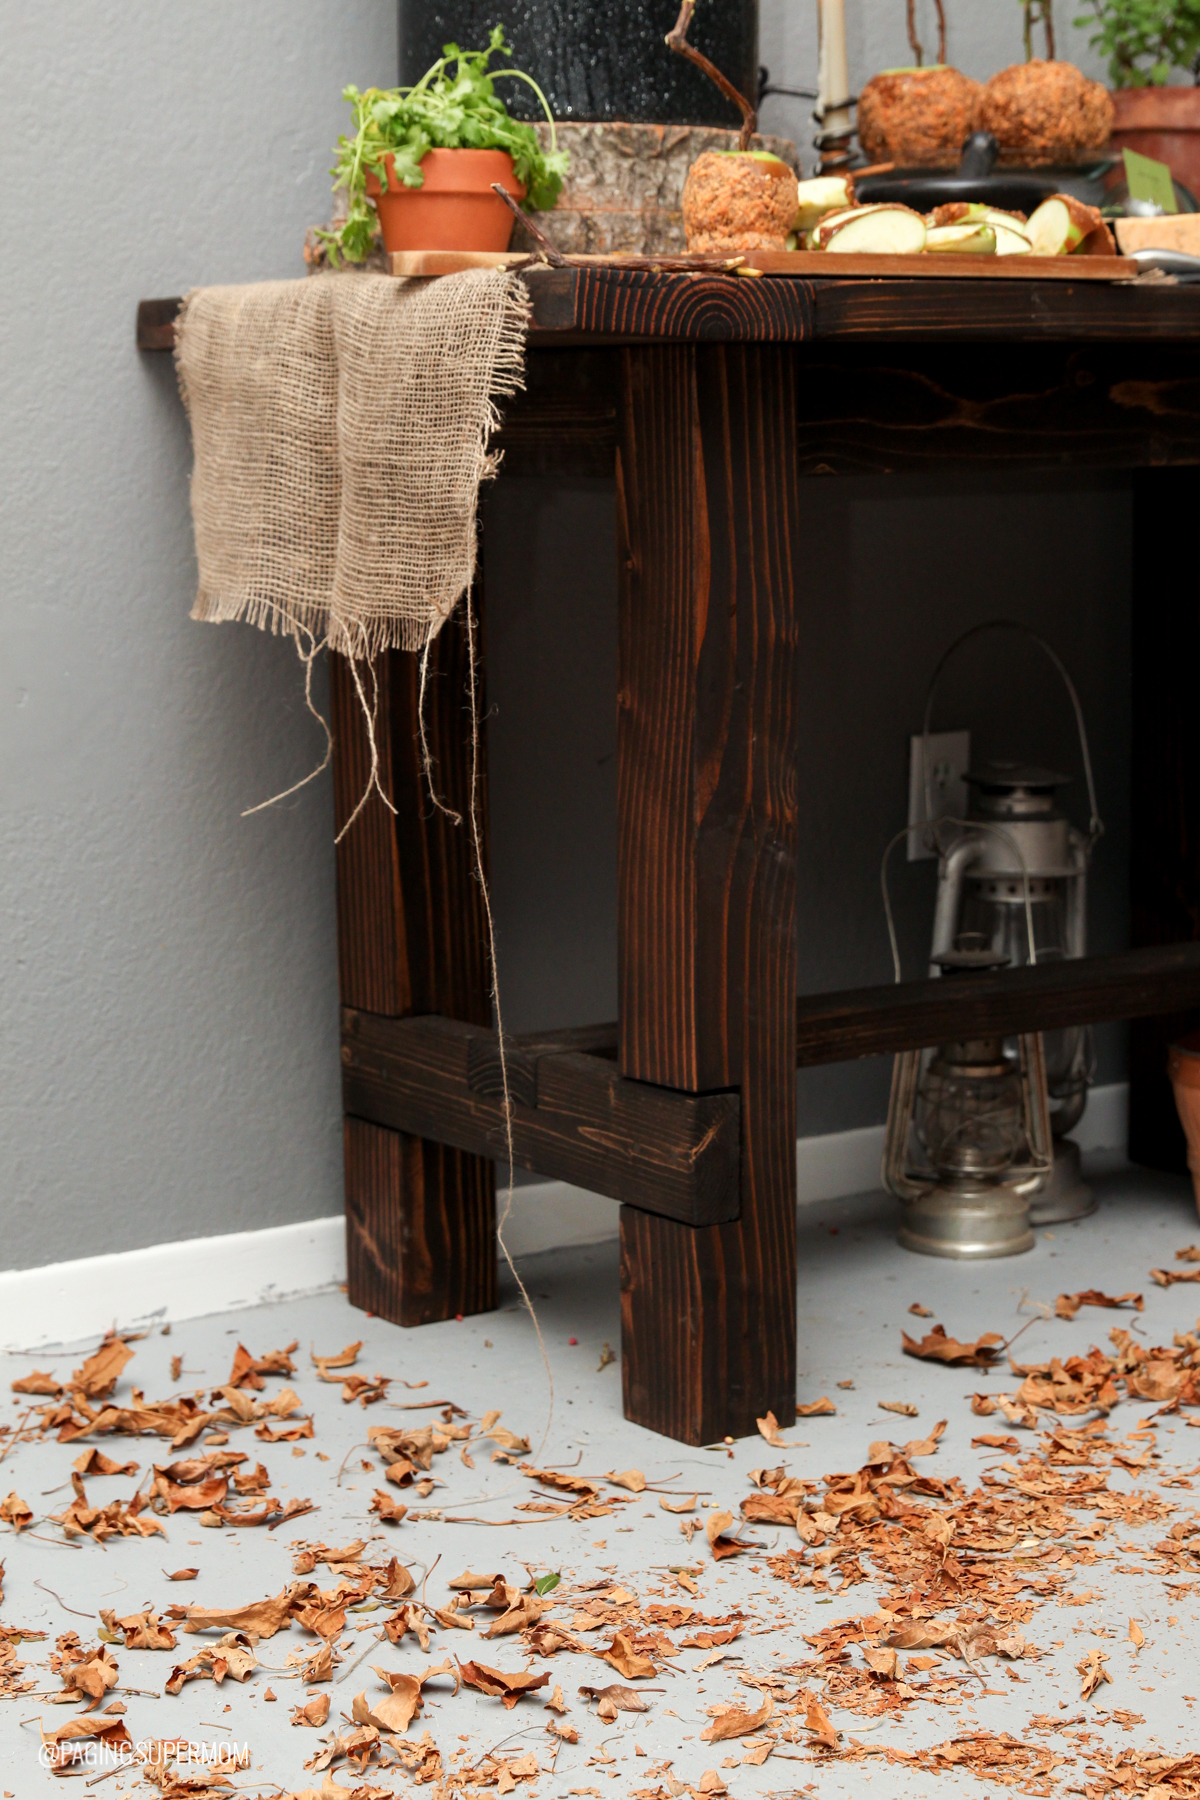 Witch Party Ideas: Cover the floor with fall leaves to bring the outdoors in via @PagingSupermom